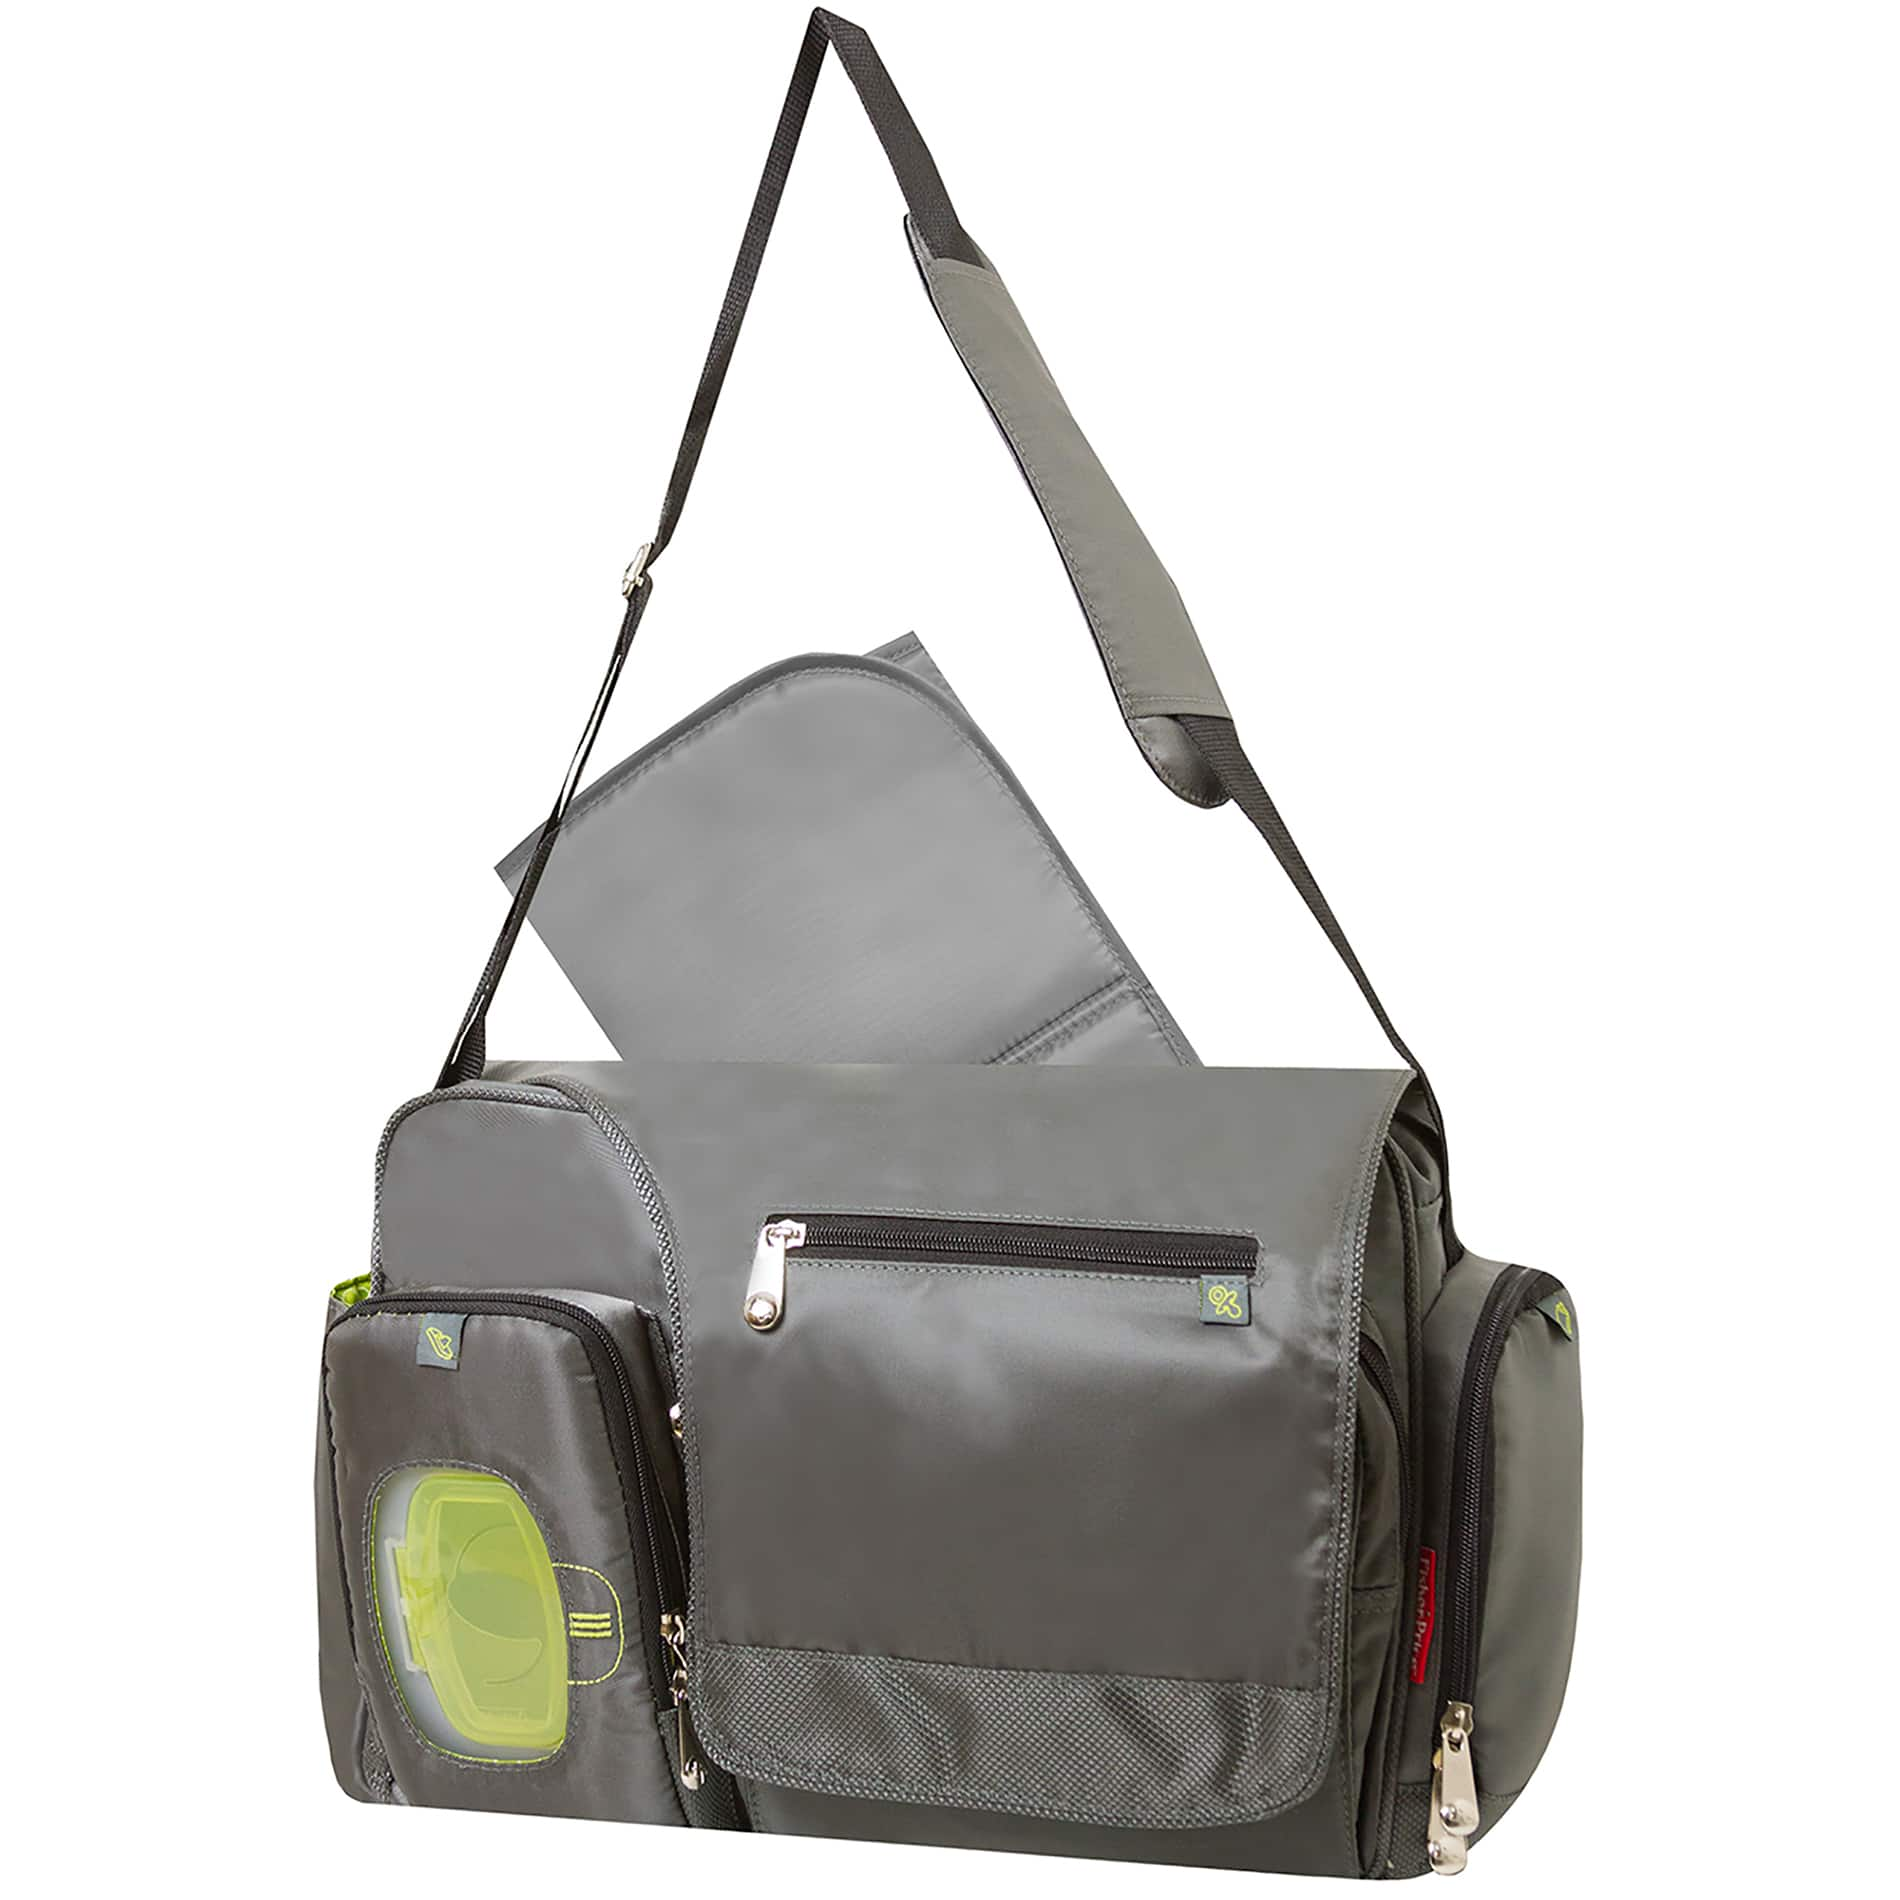 Kmart Has A Great On Diaper Bags Including Fisher